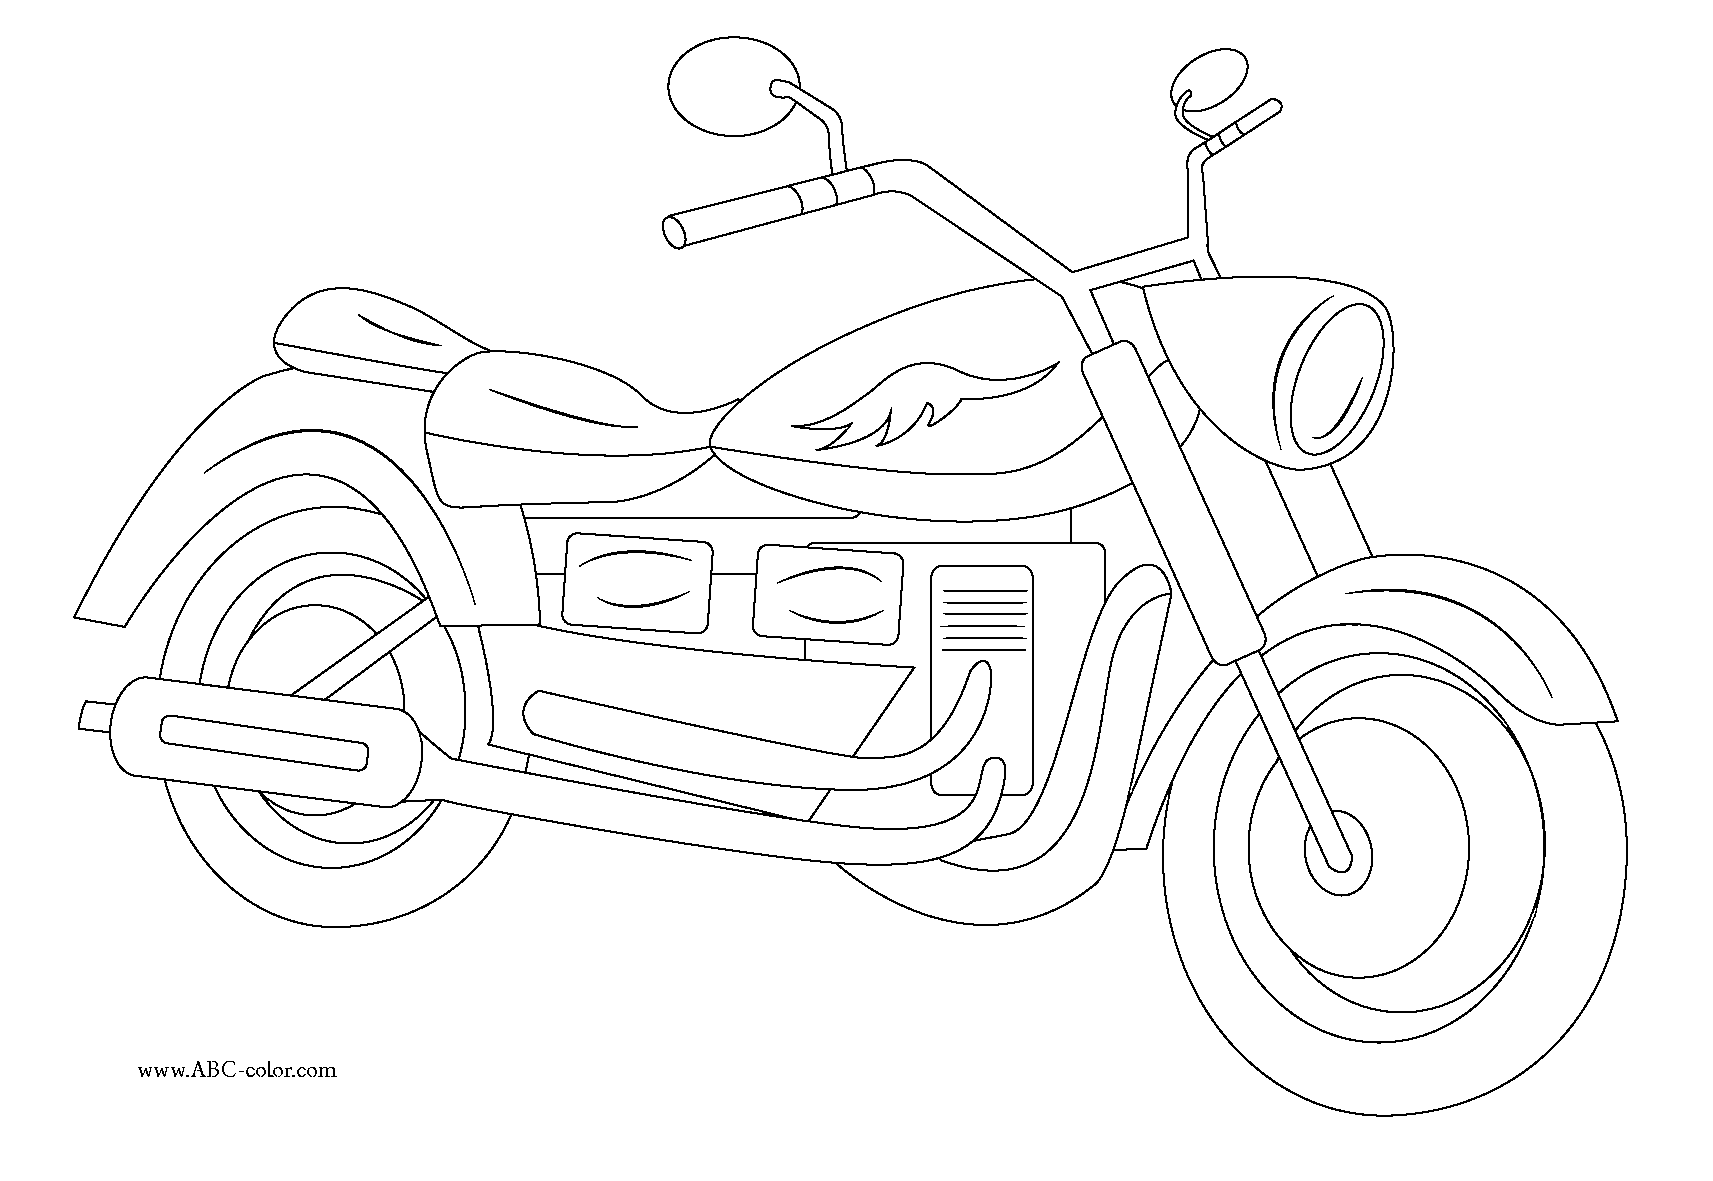 D:\downloads\motorcycle-bitmap-coloring.png